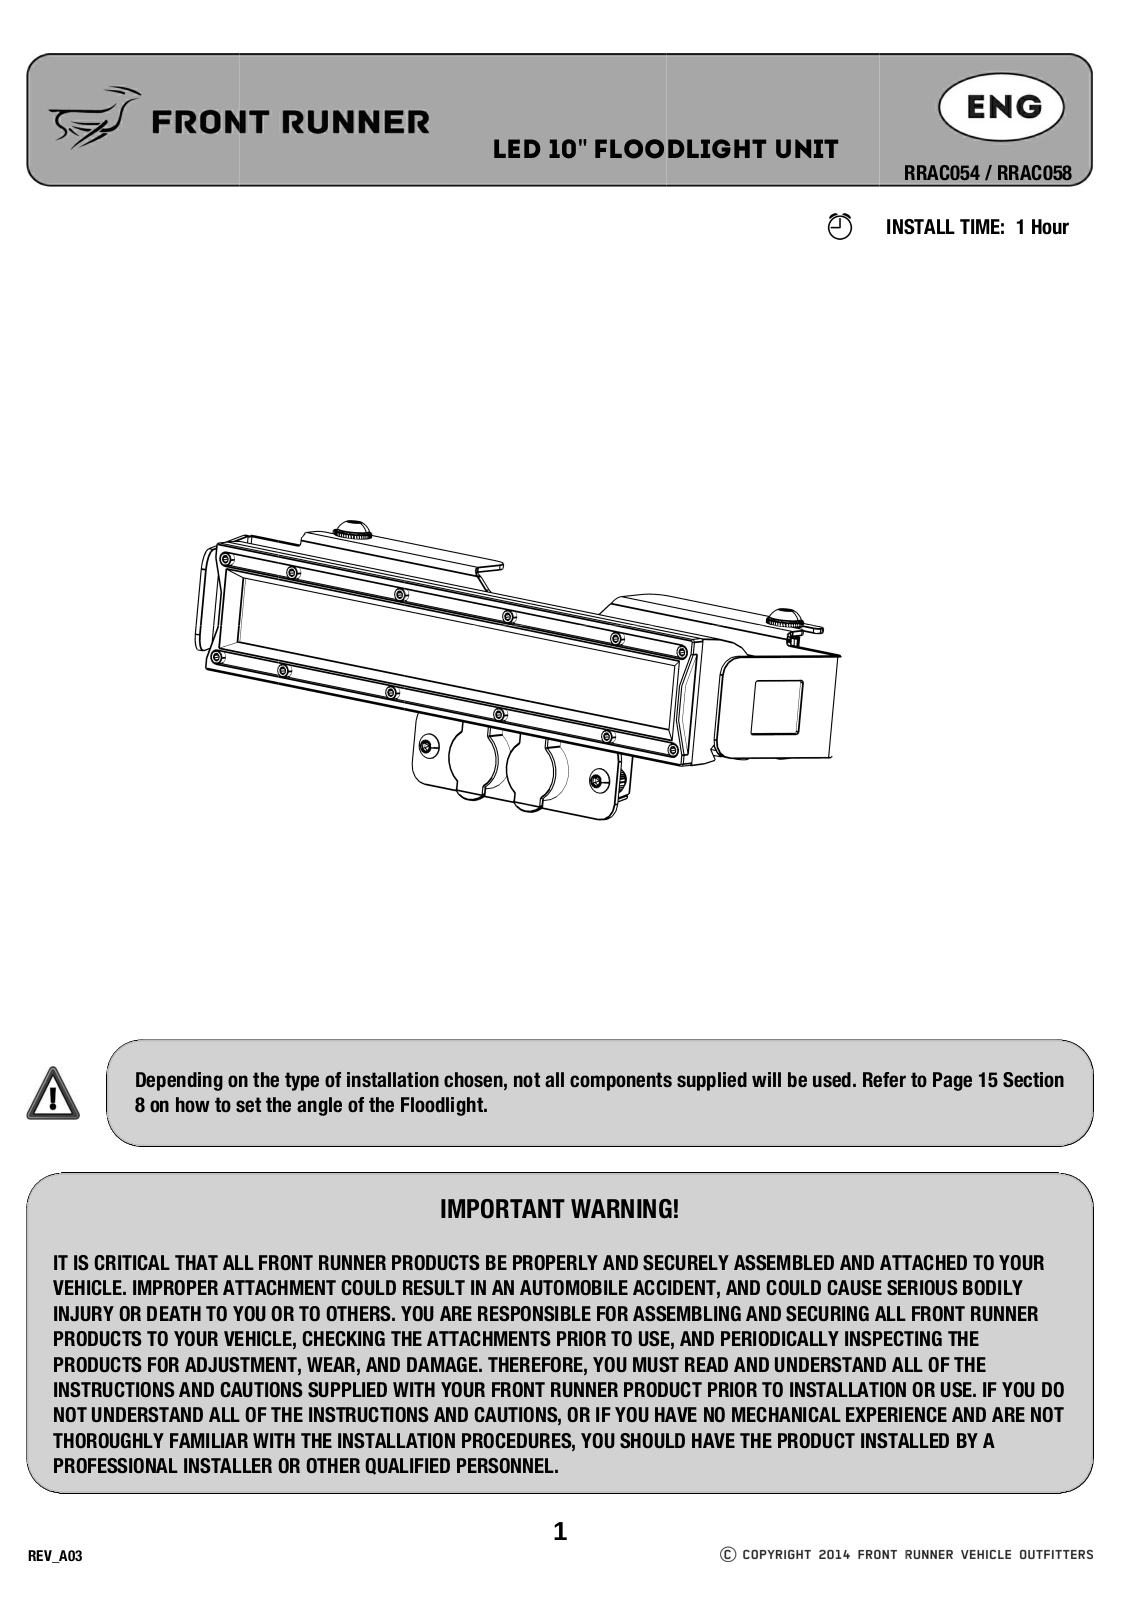 Installation instructions for RRAC054